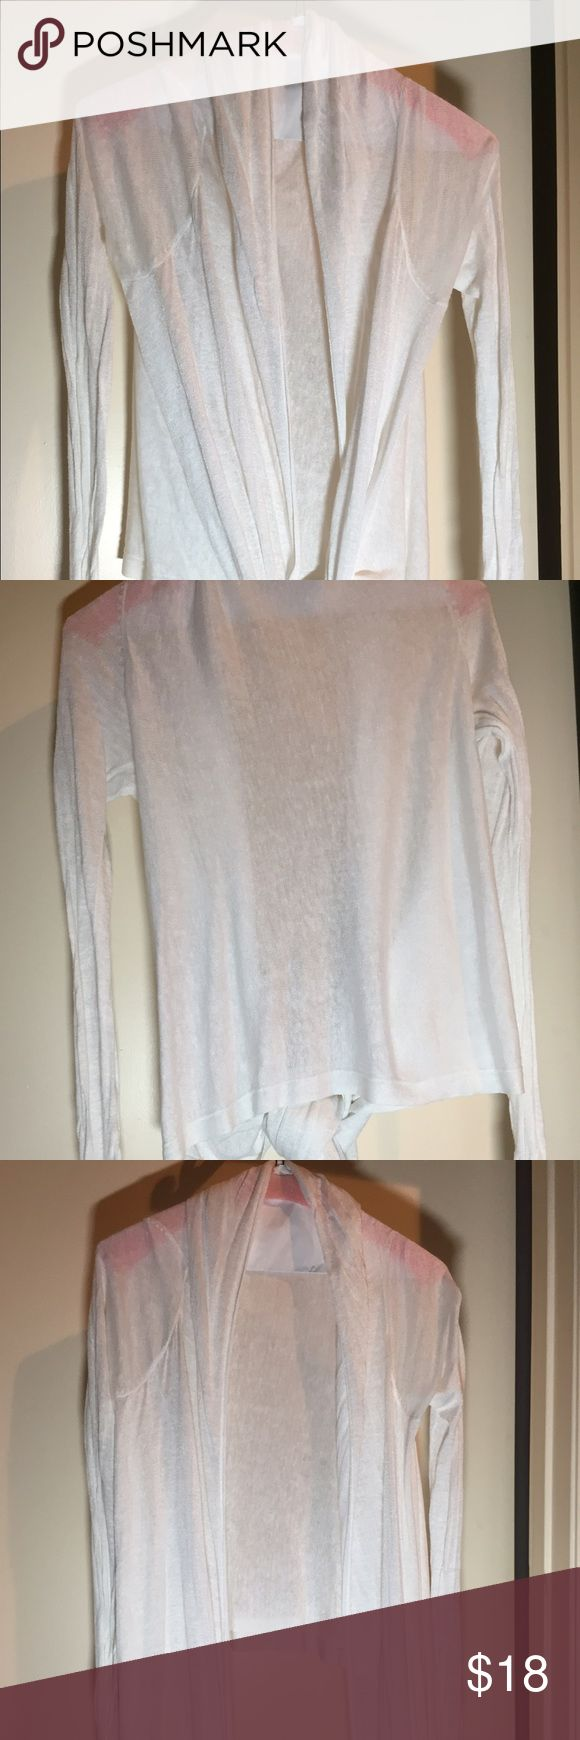 Victoria Secrets / Moda Inc. Sweater with tie Victoria Secret / Moda International Sweater Jacket which ties in front. Sheer solid white made from 63% Linen and 37% Rayon.  This sweater jacket looks great with a pencil skirt as did Natalie Morales of the Today show.   Hand wash in cold water Moda International Tops Camisoles